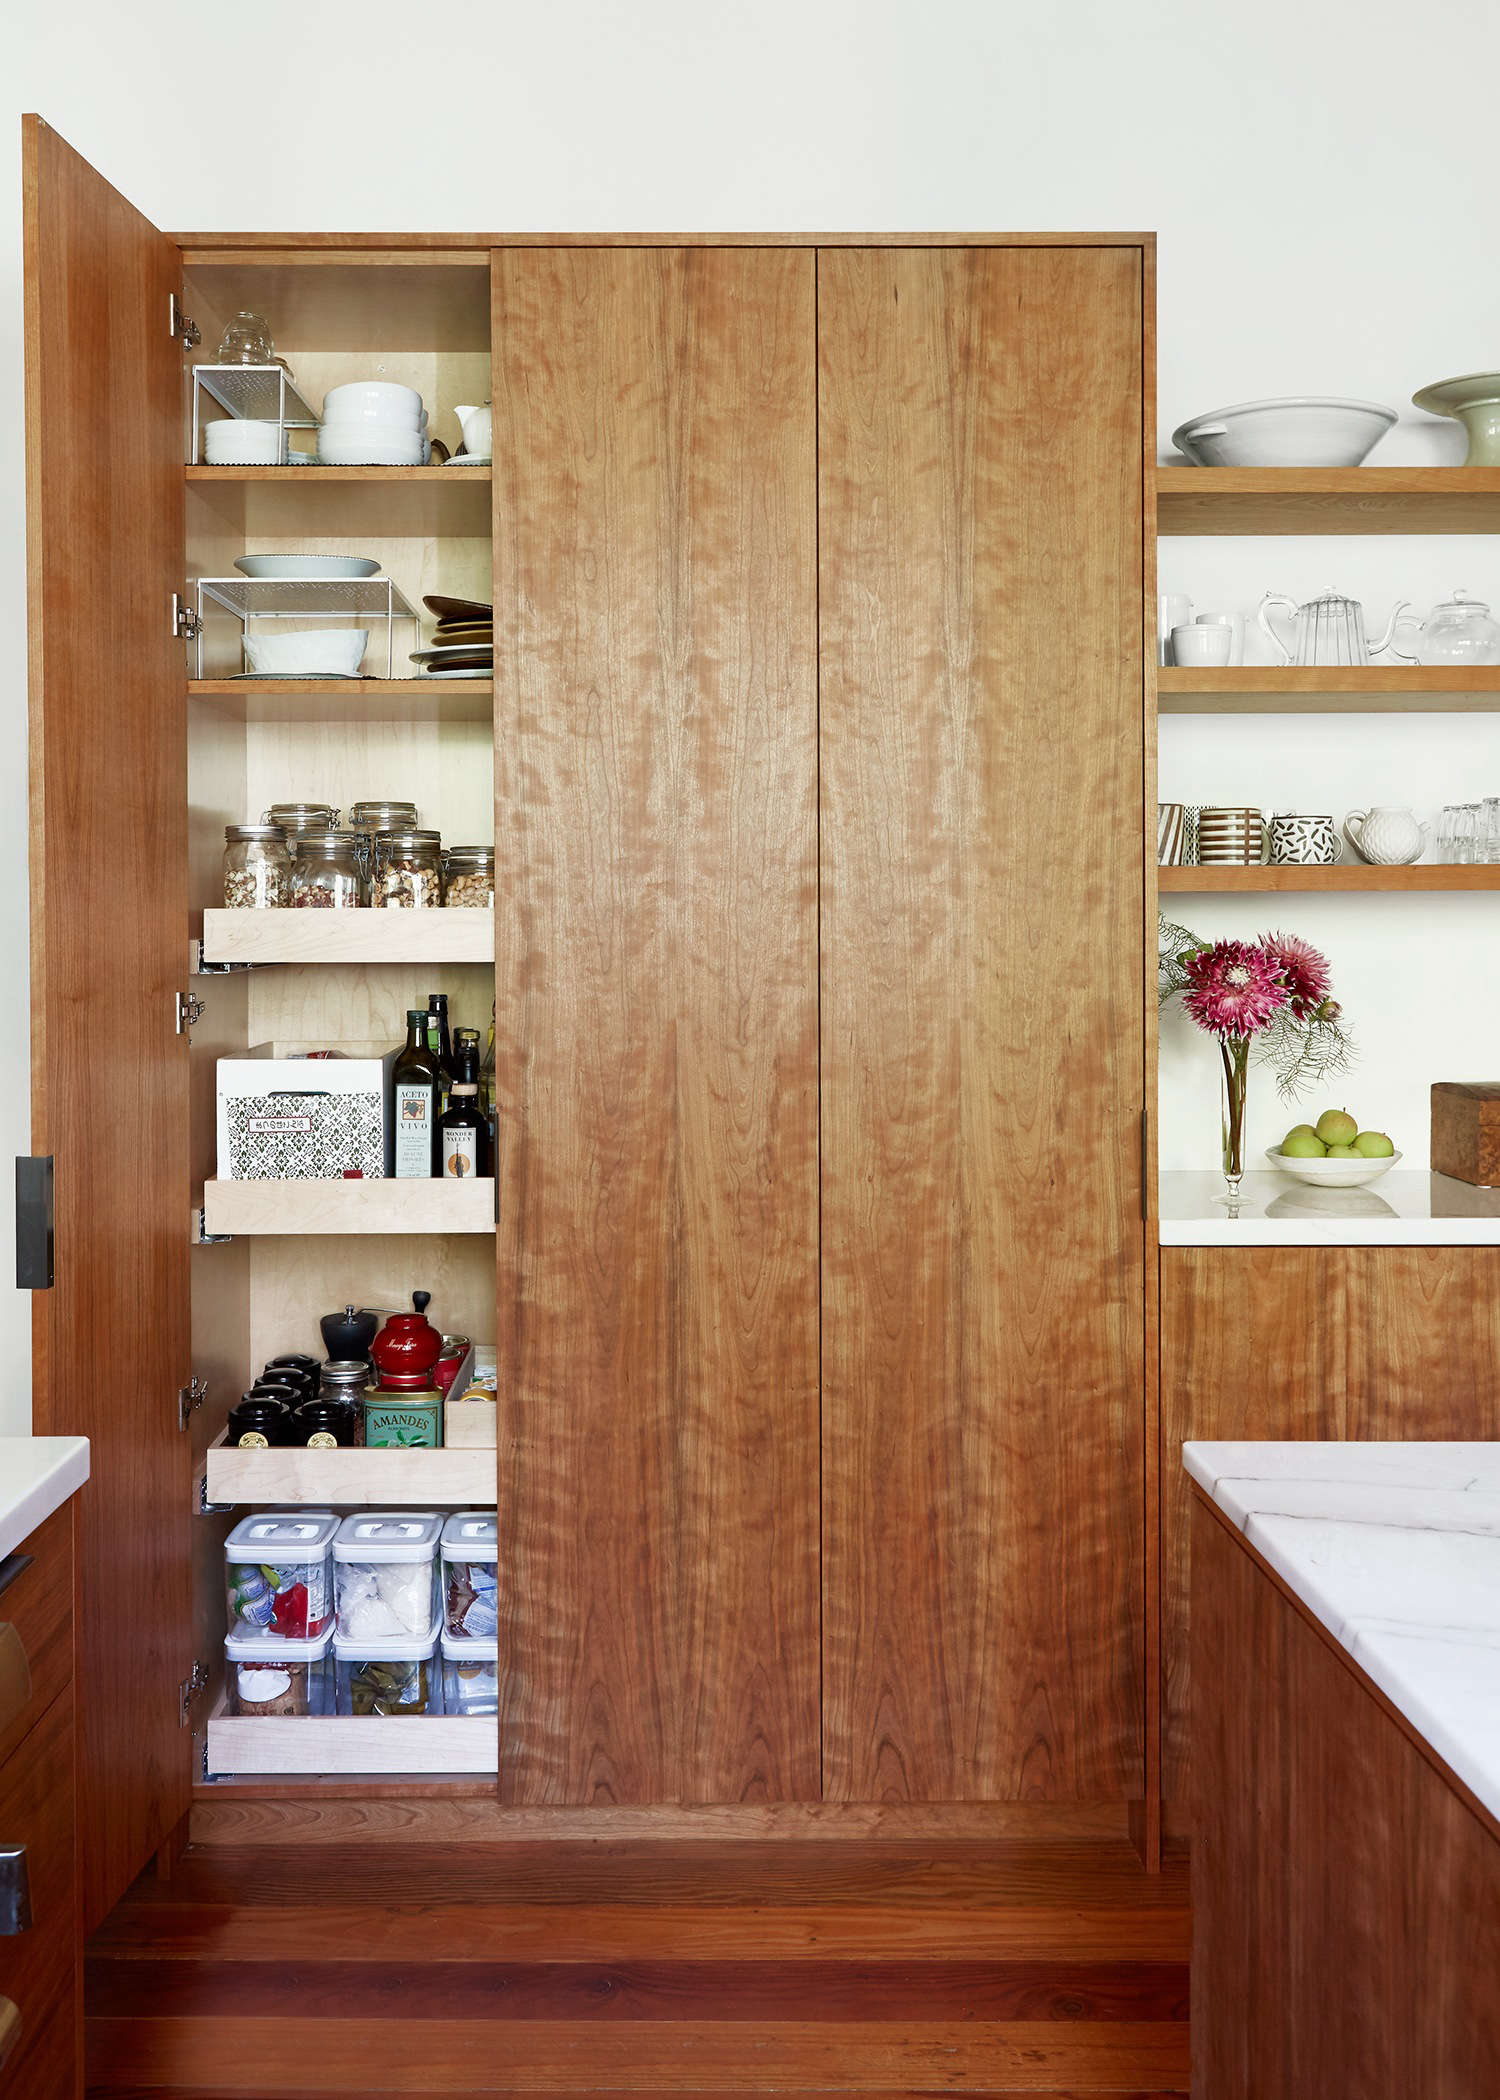 In the previous iteration of photographer Aya Bracket's Oakland kitchen, deep, narrow shelves made it impossible for her to grab the right item. Her new pantry has broad, shallow shelves on rollers. See more in Kitchen of the Week: Aya Brackett's Hippie House Update in Oakland.Photograph by and courtesy of Aya Brackett.